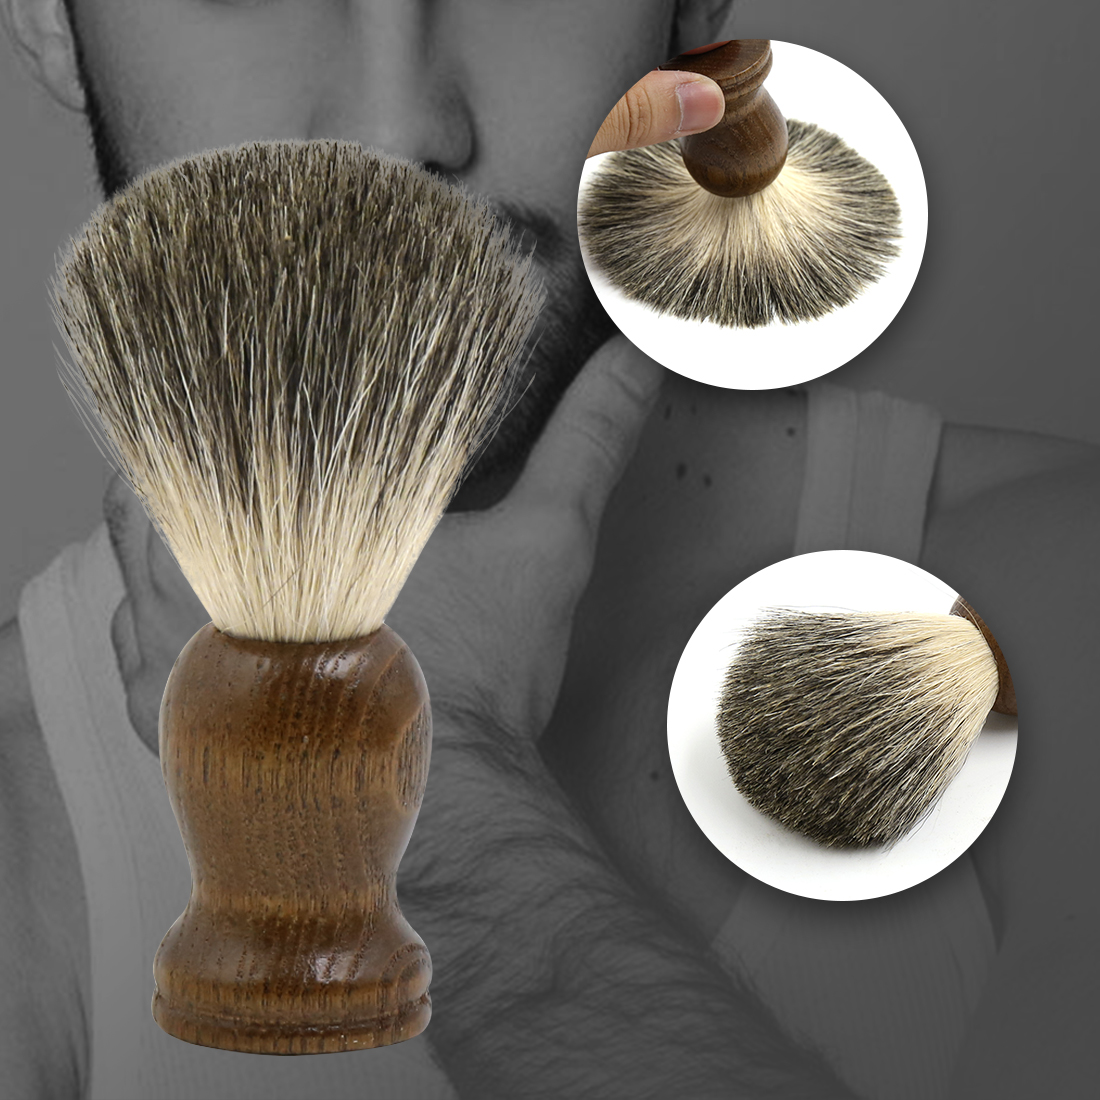 Vintage Wooden Handle Pure Badger Hair Shaving Brush Barber Tool for Men